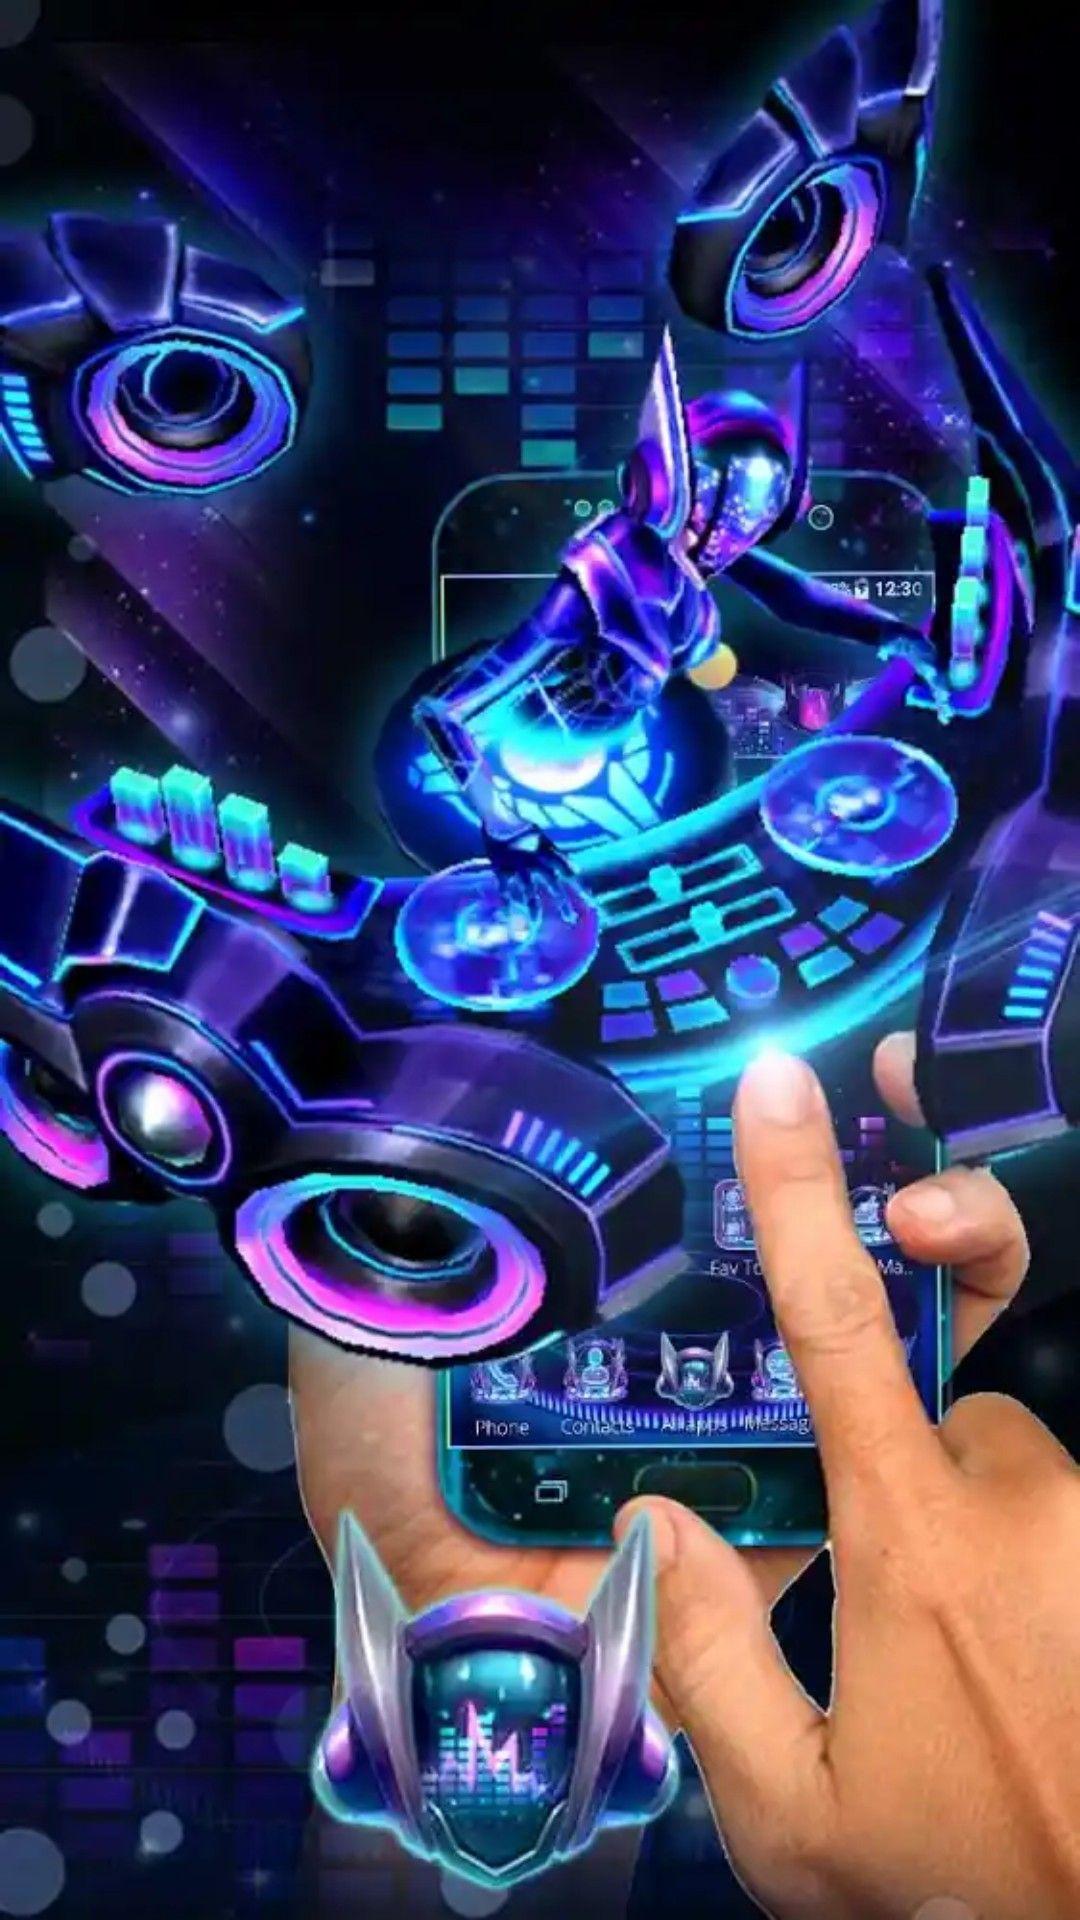 Pin by Android 3D Themes on 3D Themes | Dj music, App store, App